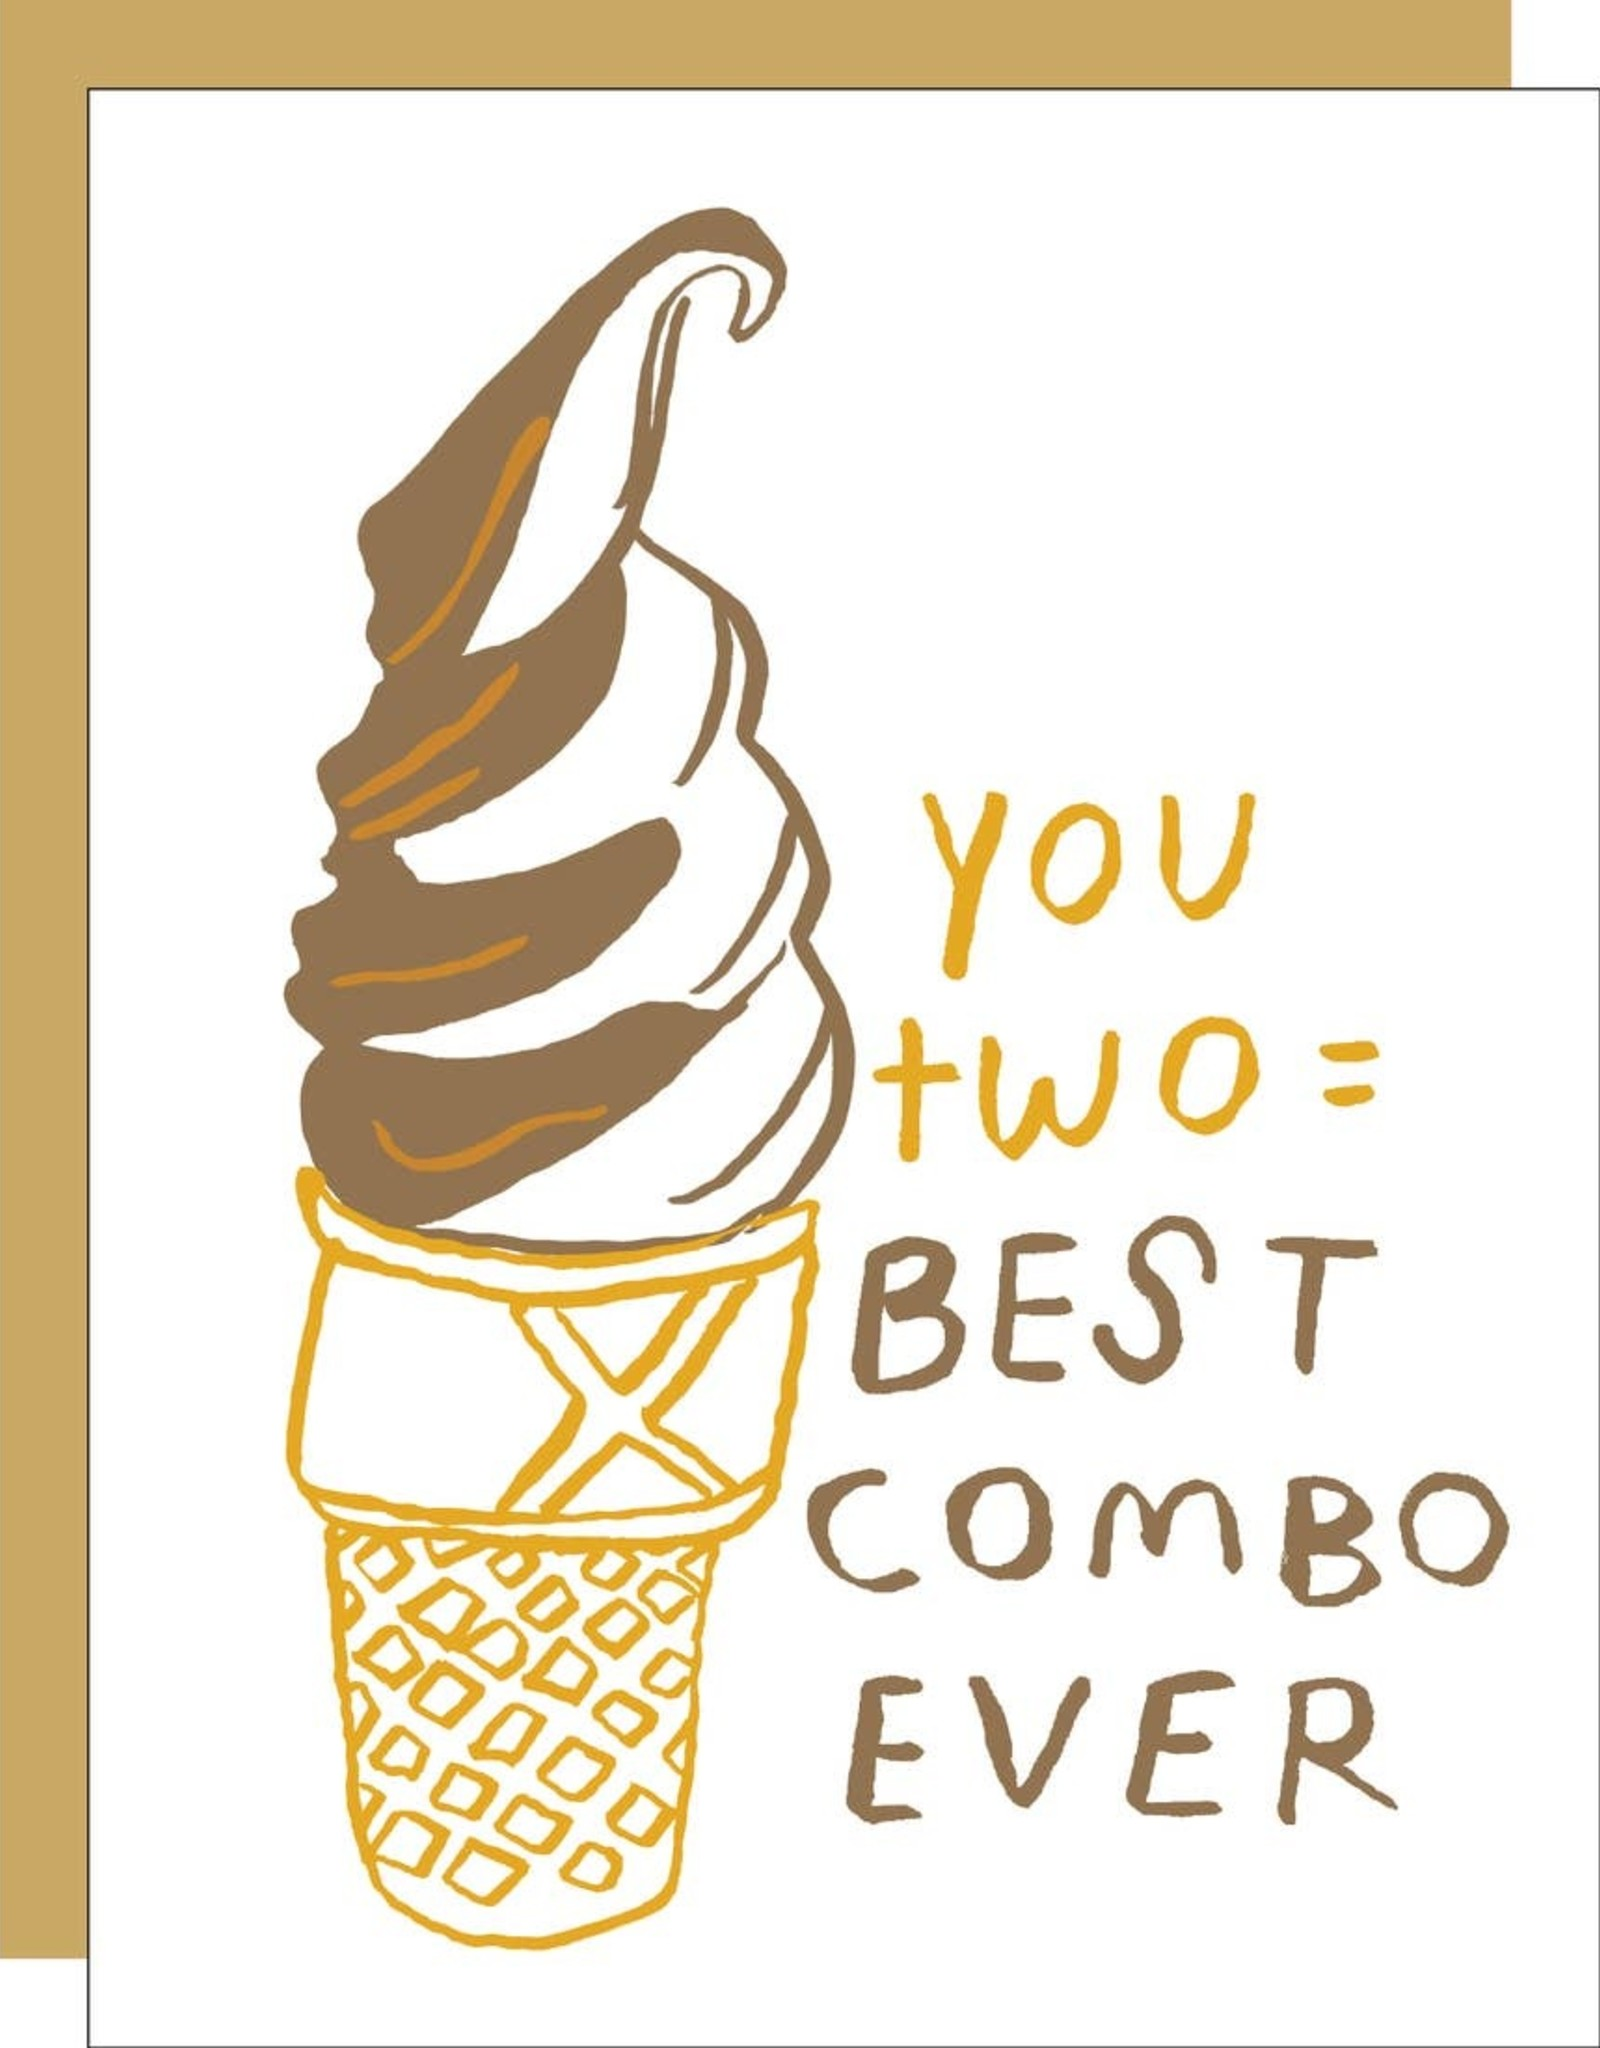 Egg Press Manufacturing Card - Love: Best Couple Swirl